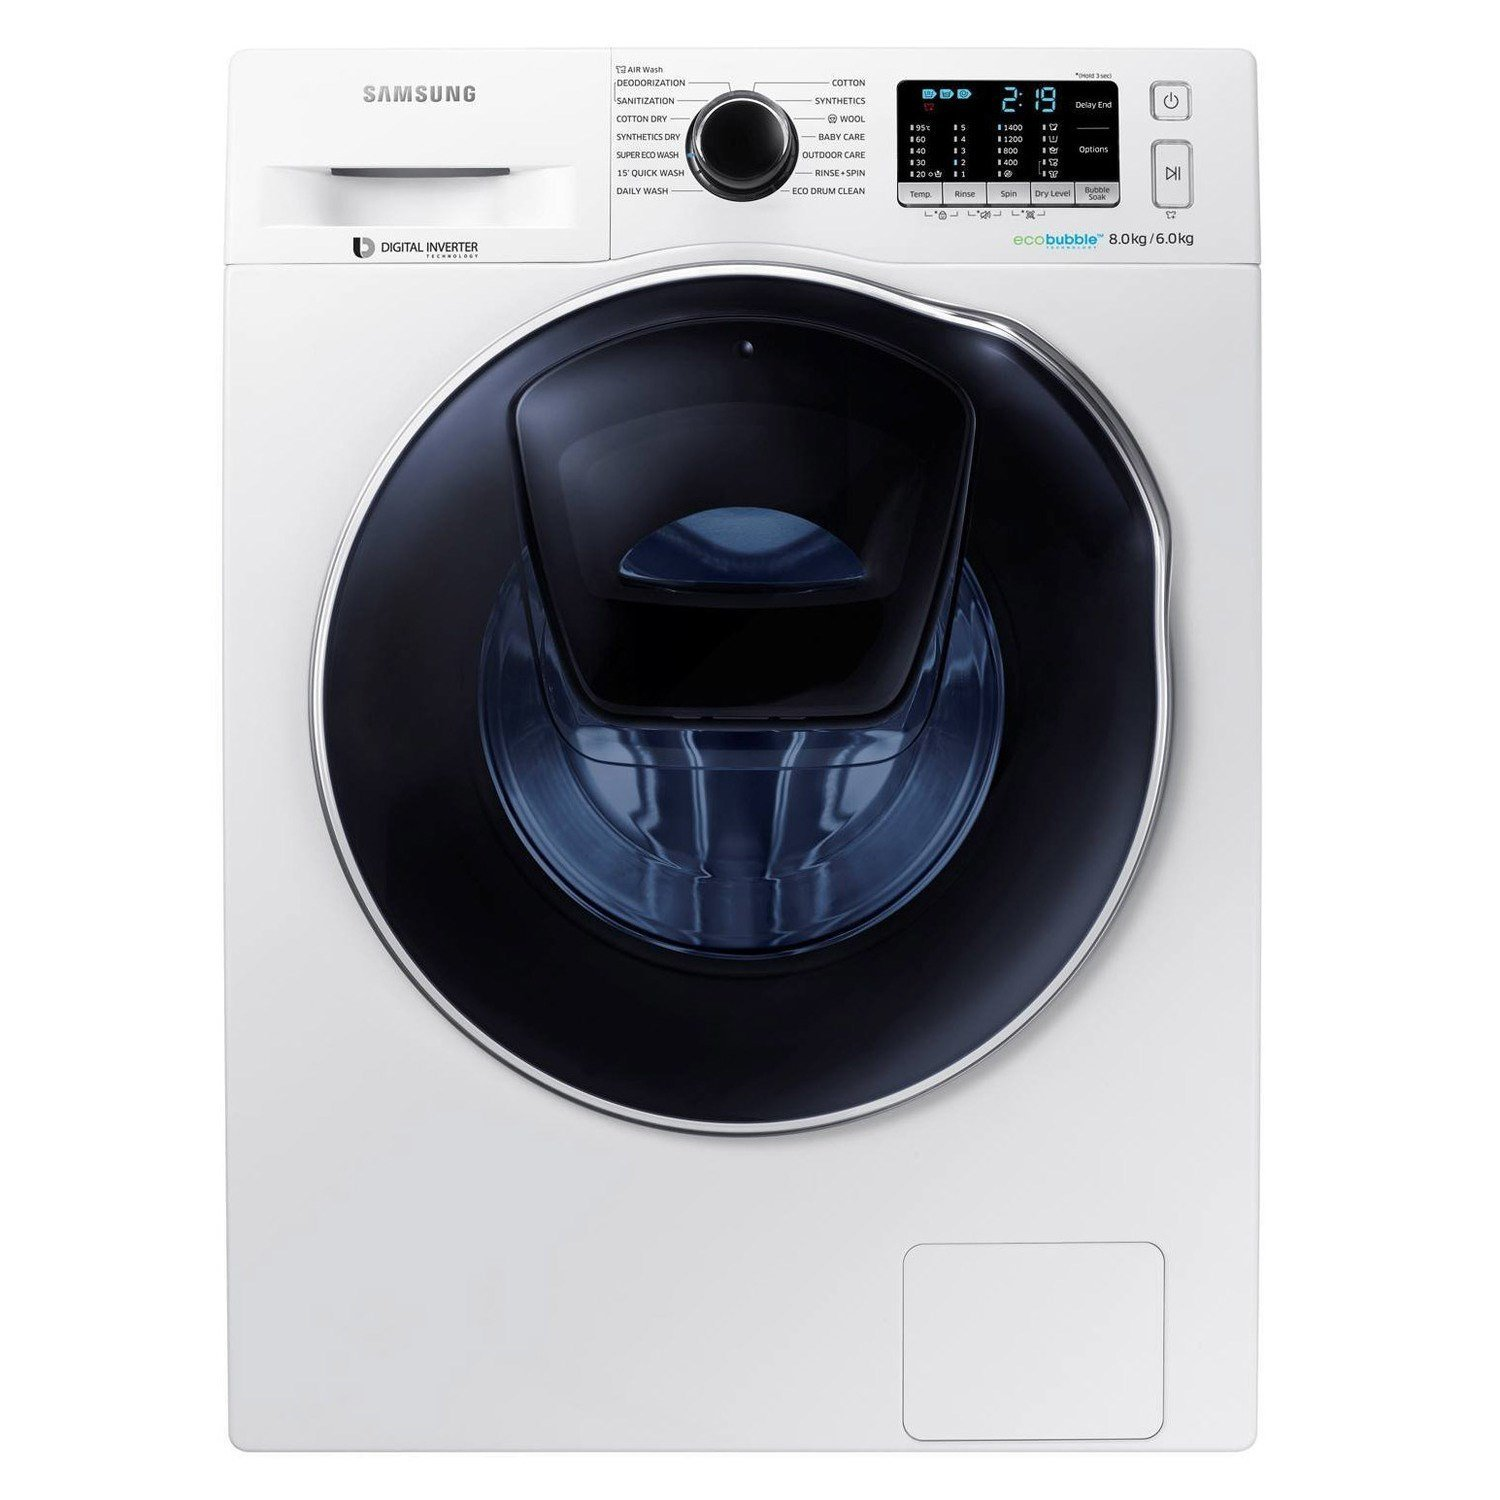 samsung washer dryer 8kg 6kg life in notions